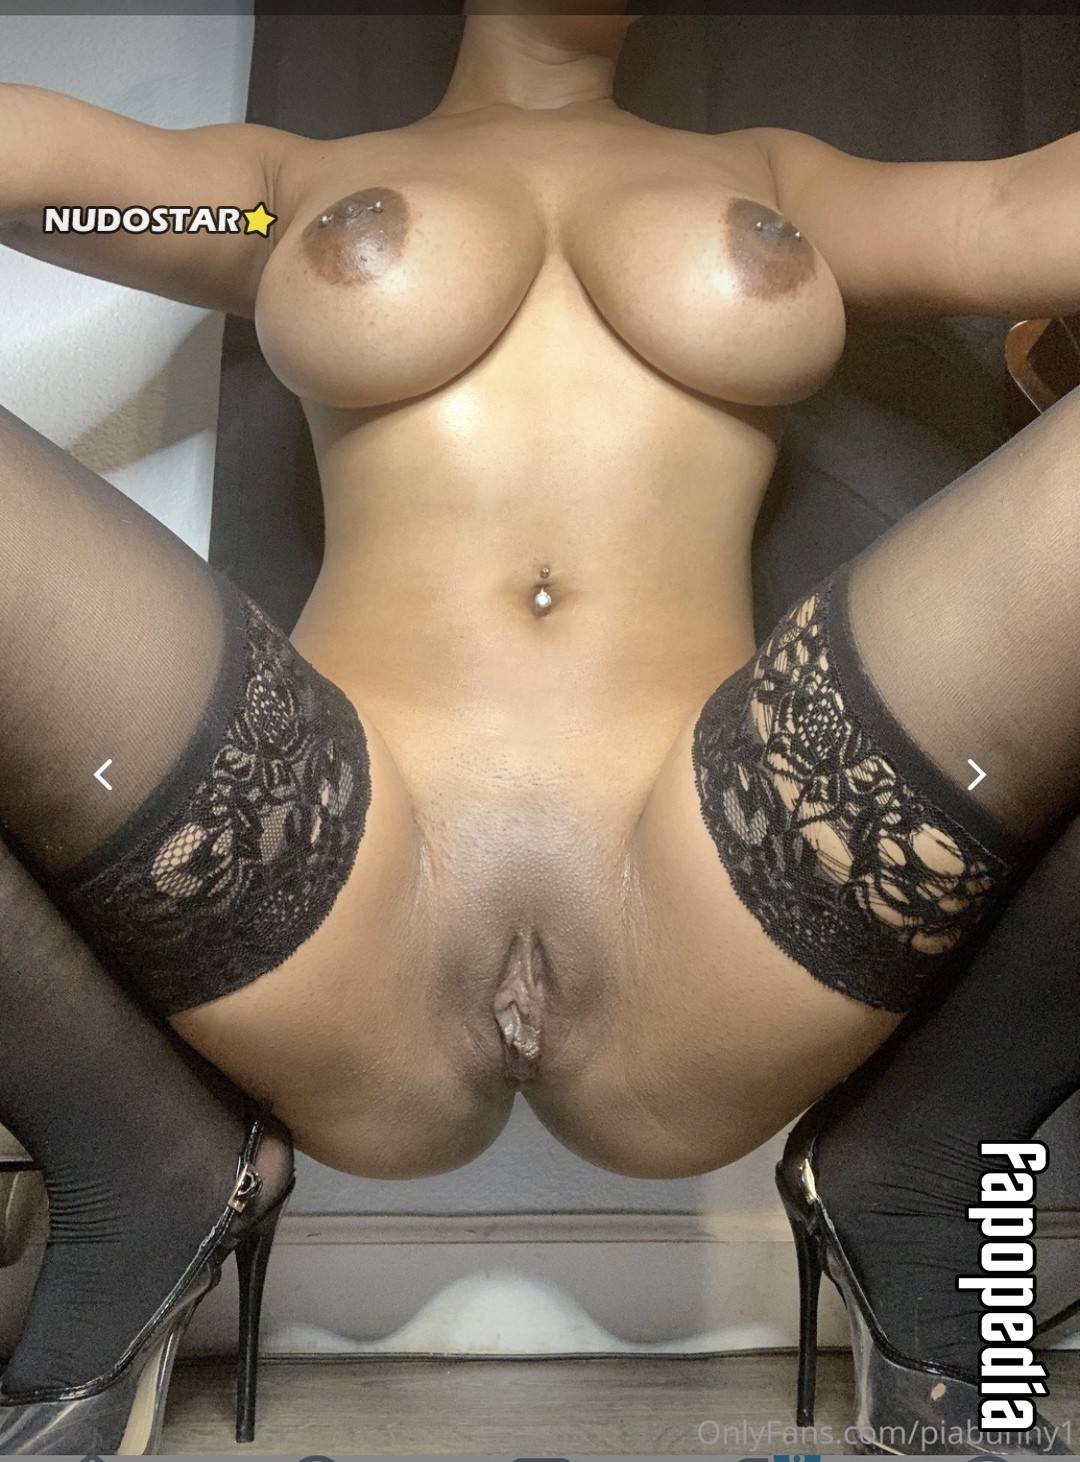 Piabunny1 Nude OnlyFans Leaks